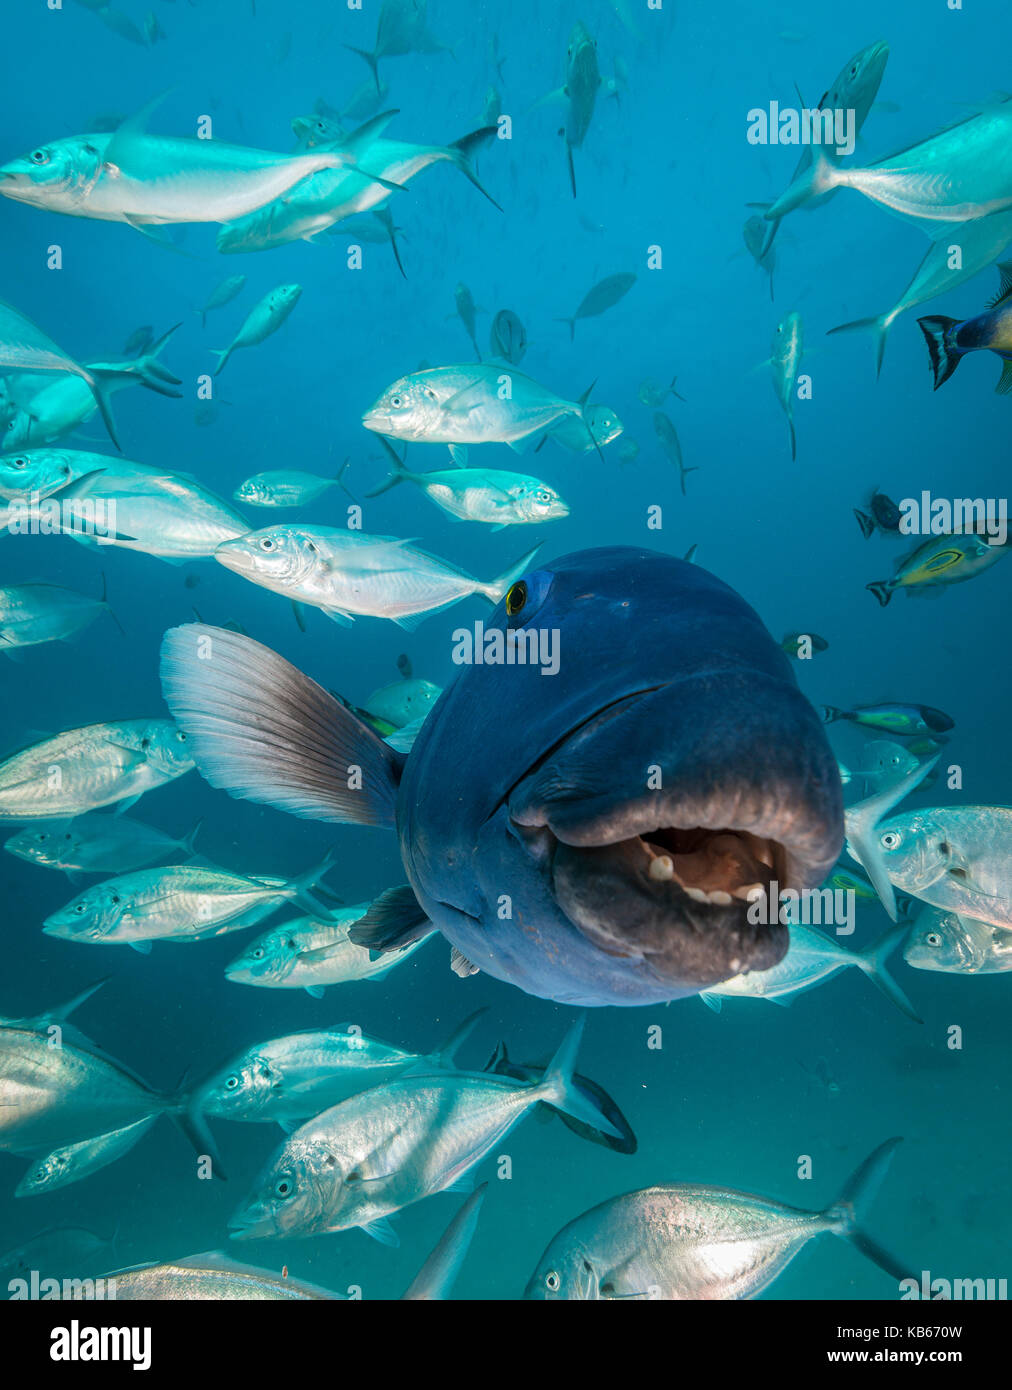 Close up view of the face of a blue groper amongst a school of jacks, Neptune Islands, South Australia. - Stock Image